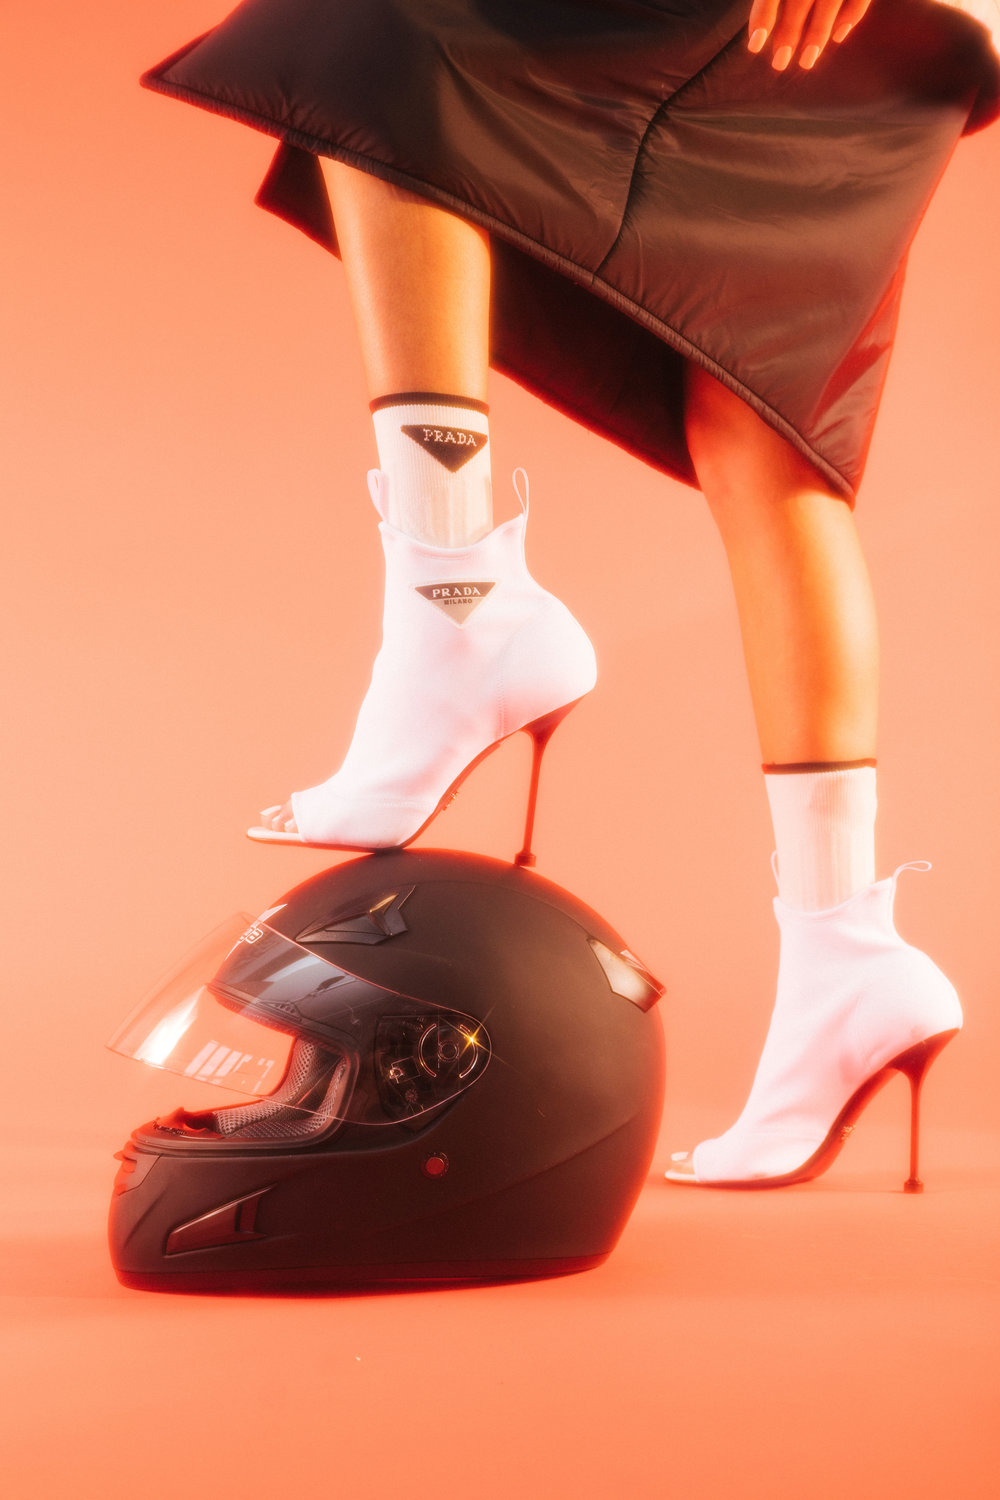 PRADA  jacket, socks, and shoes, and stylist's own helmet.